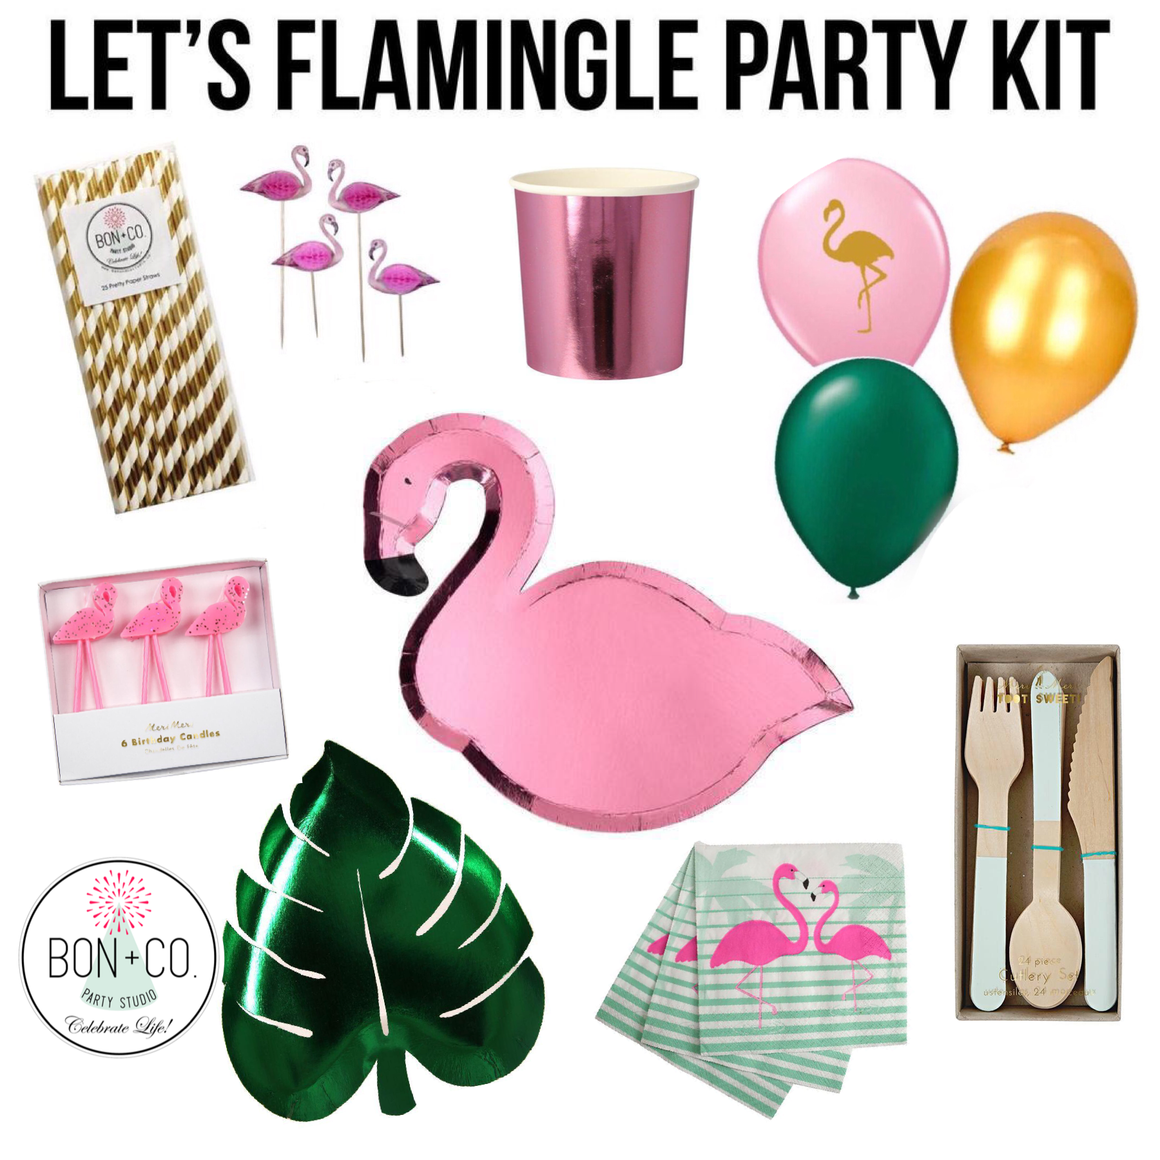 PARTY KIT - LET'S FLAMINGLE